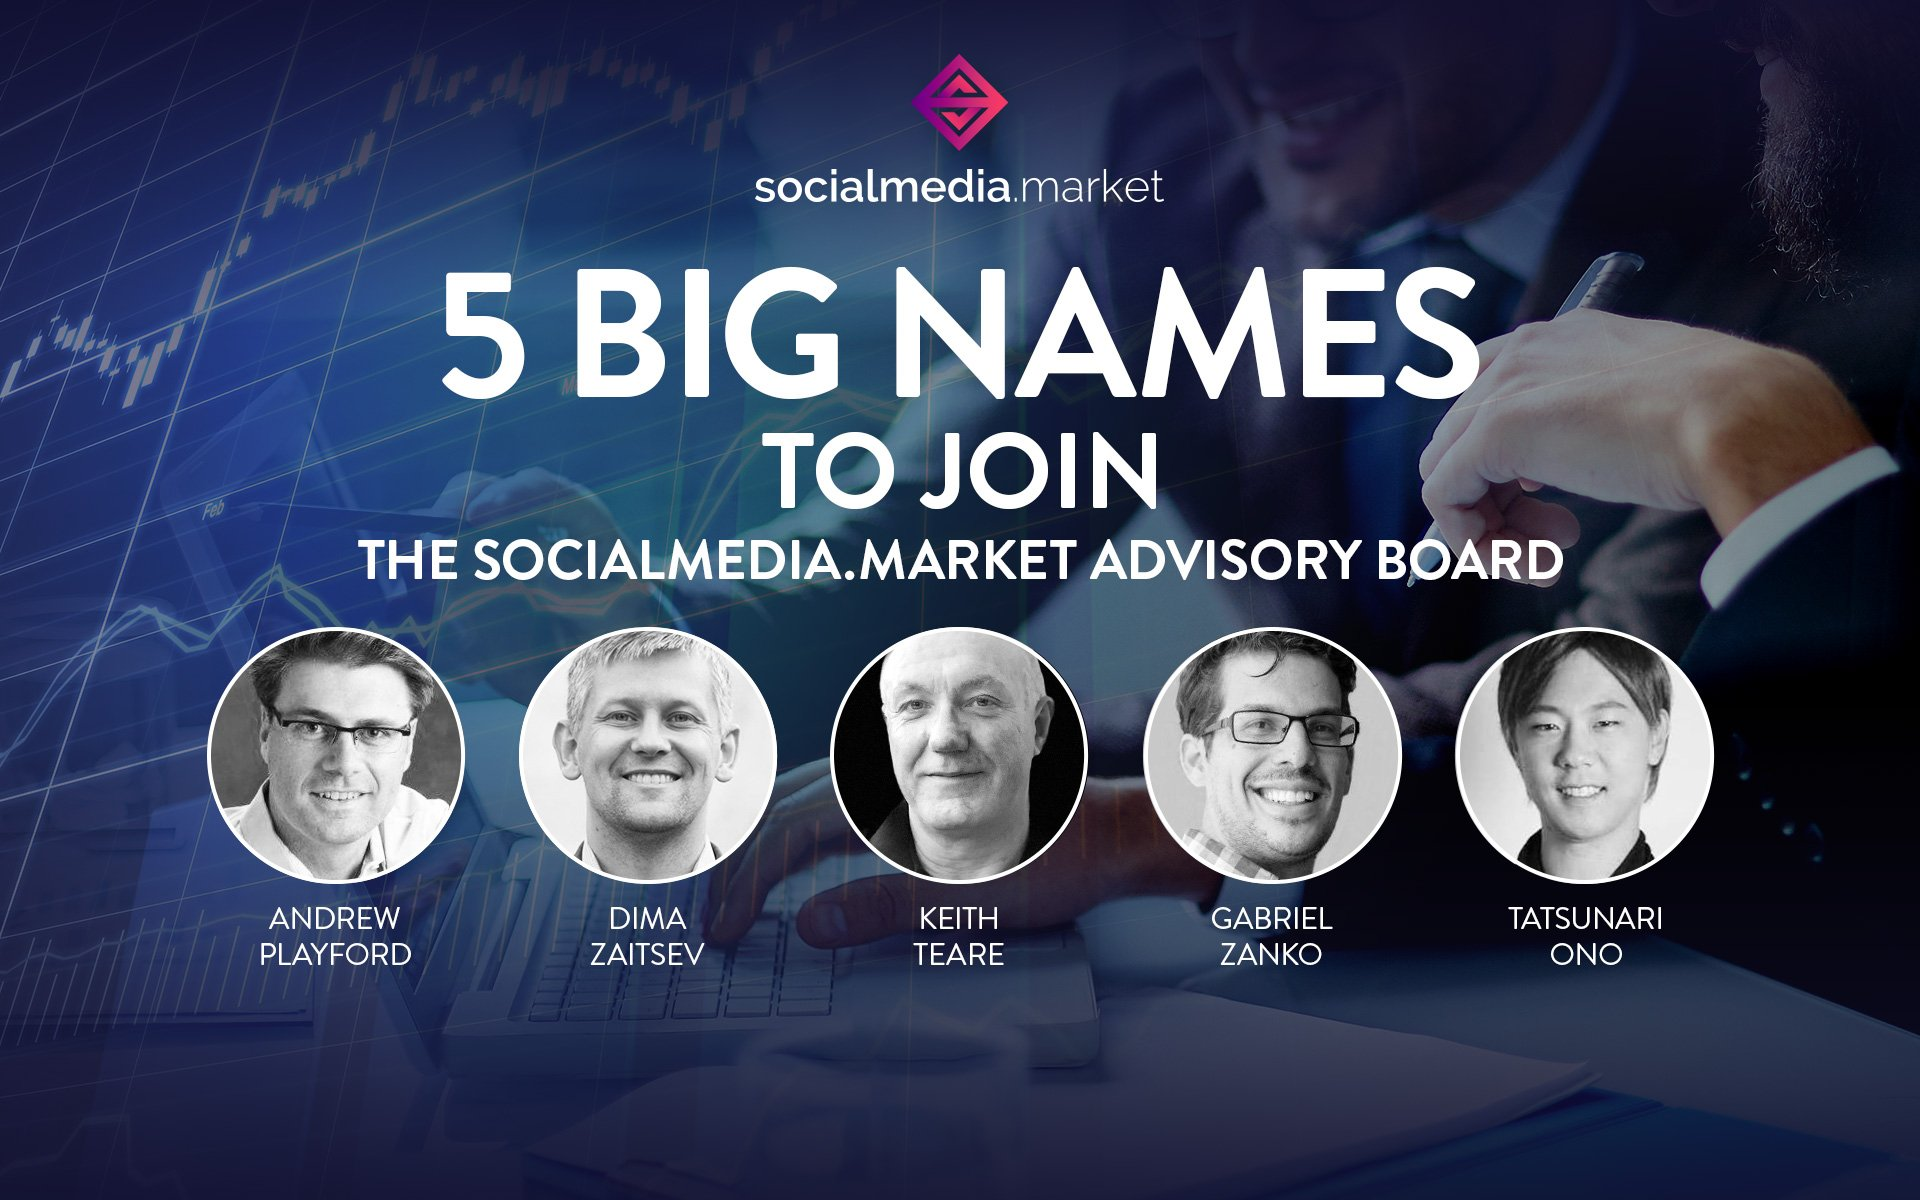 5 Big Names to Join the SocialMedia.Market Advisory Board